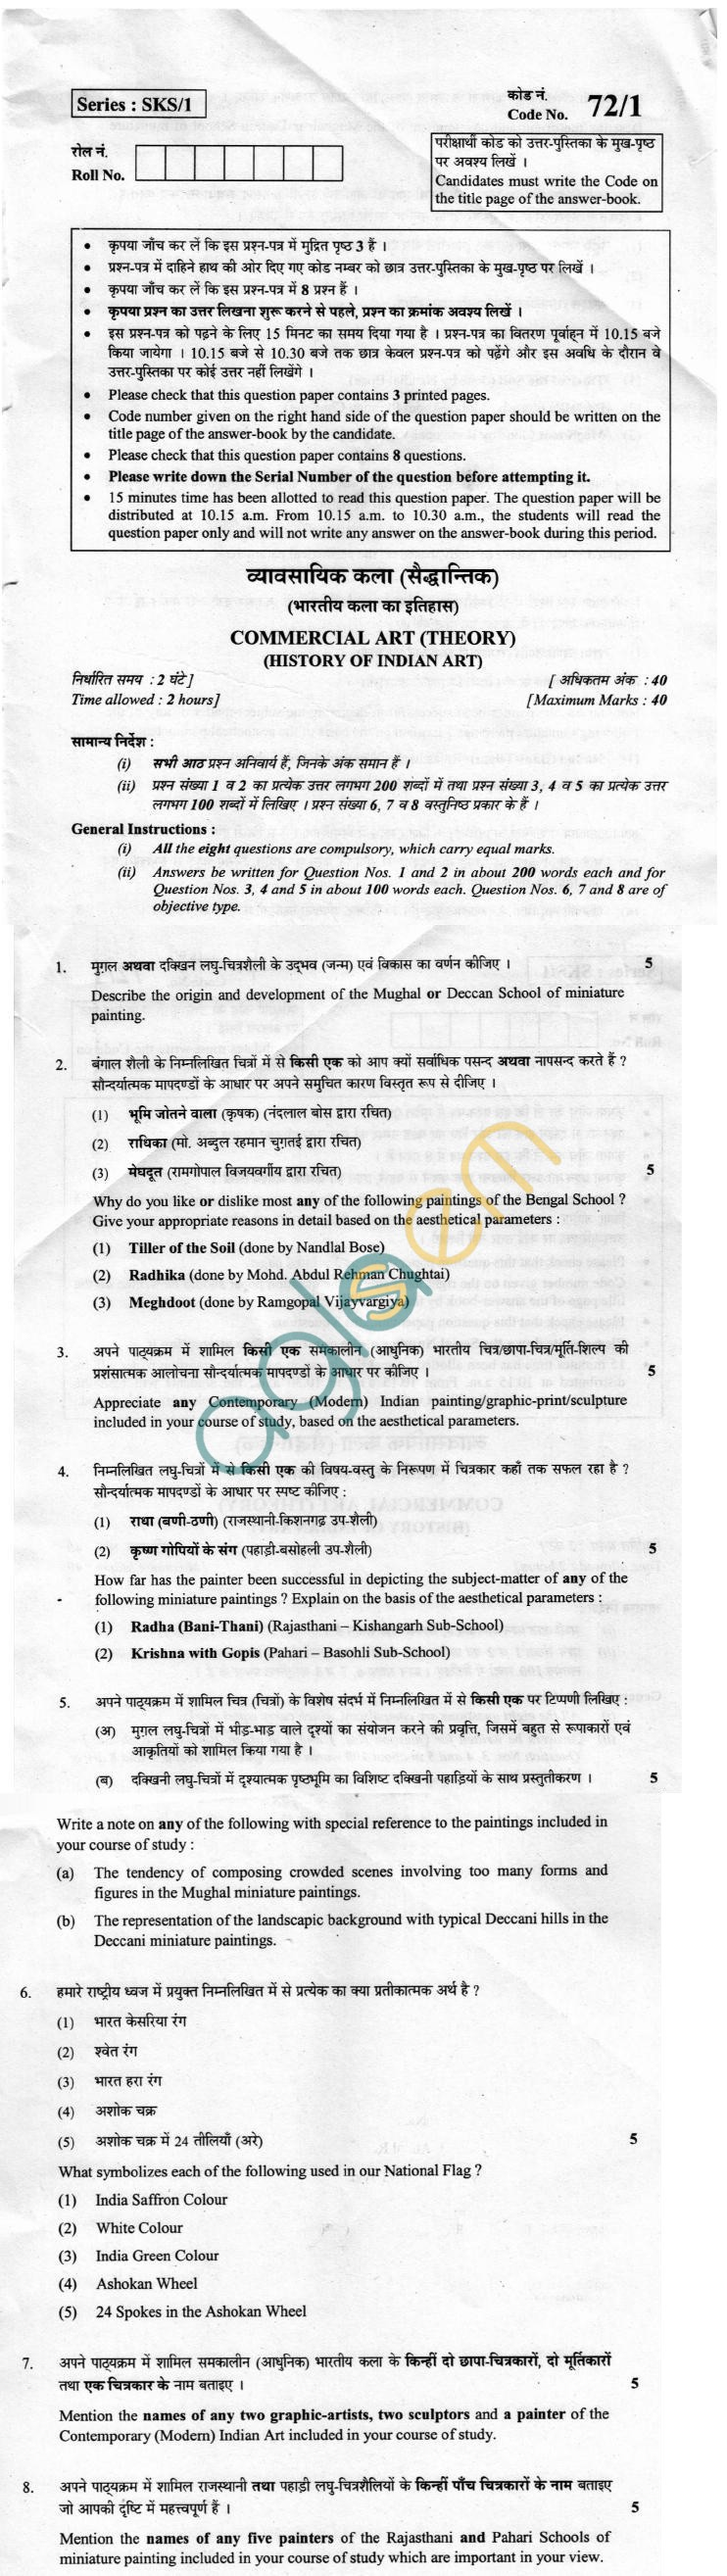 CBSE Board Exam 2013 Class XII Question Paper - Commercial Art History of Indian Art